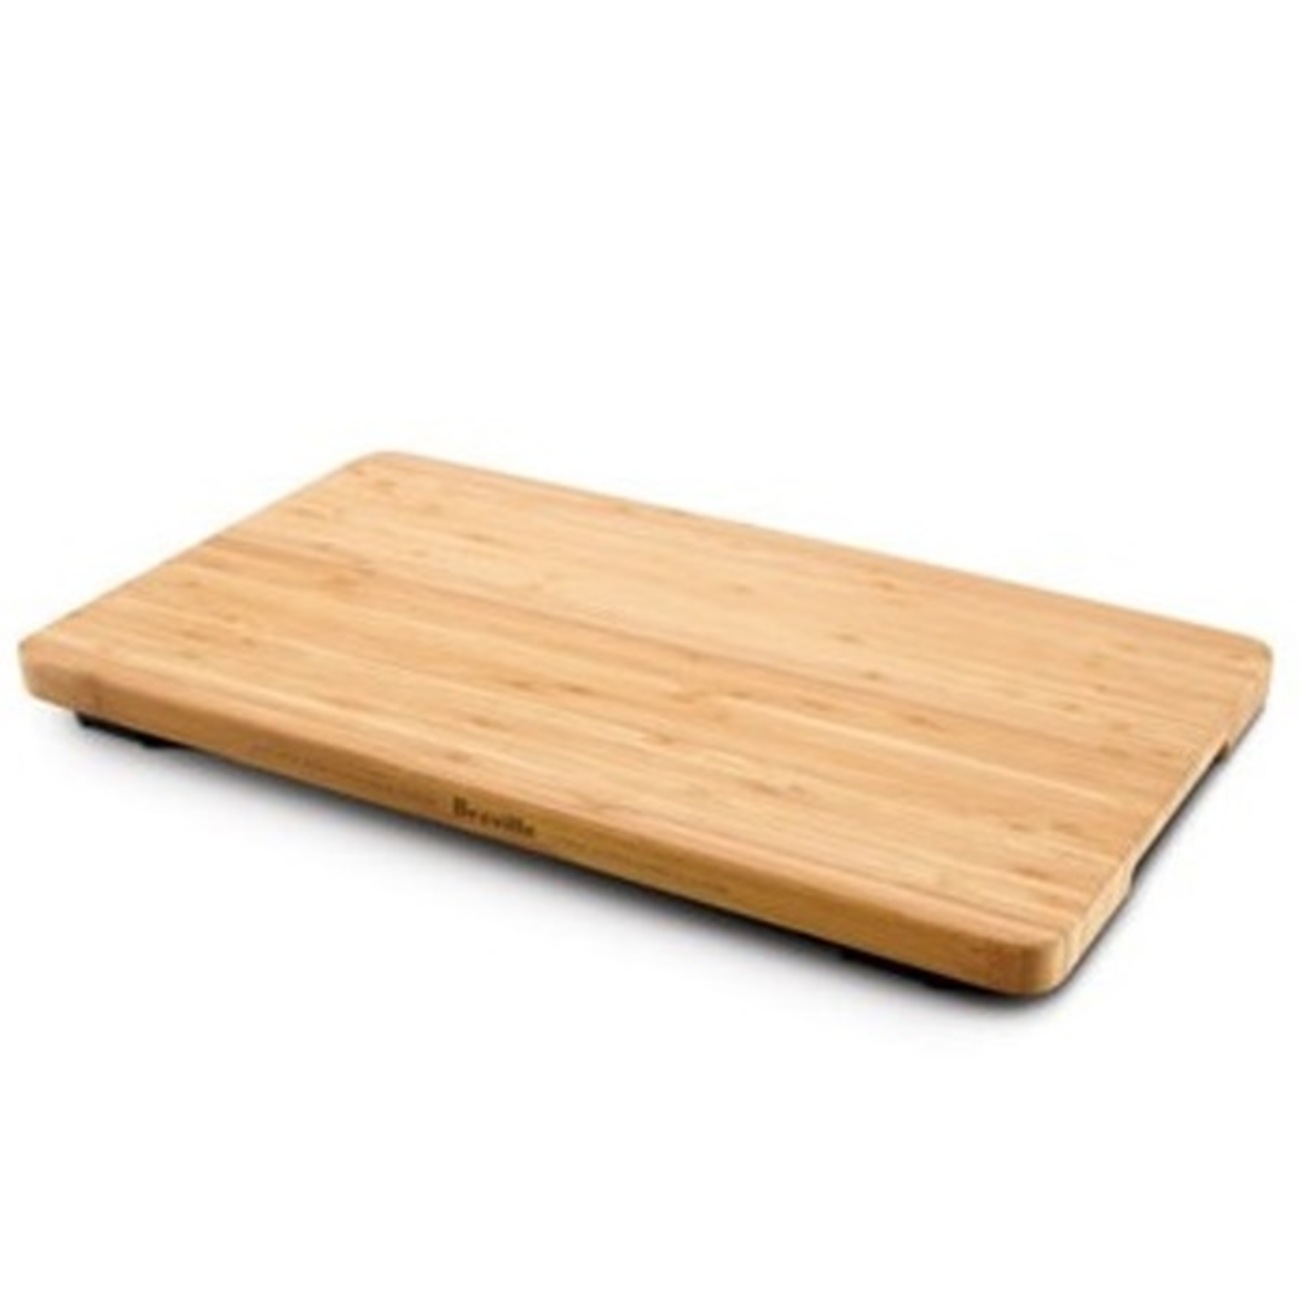 Bamboo Cutting Board for the Smart Oven® Air